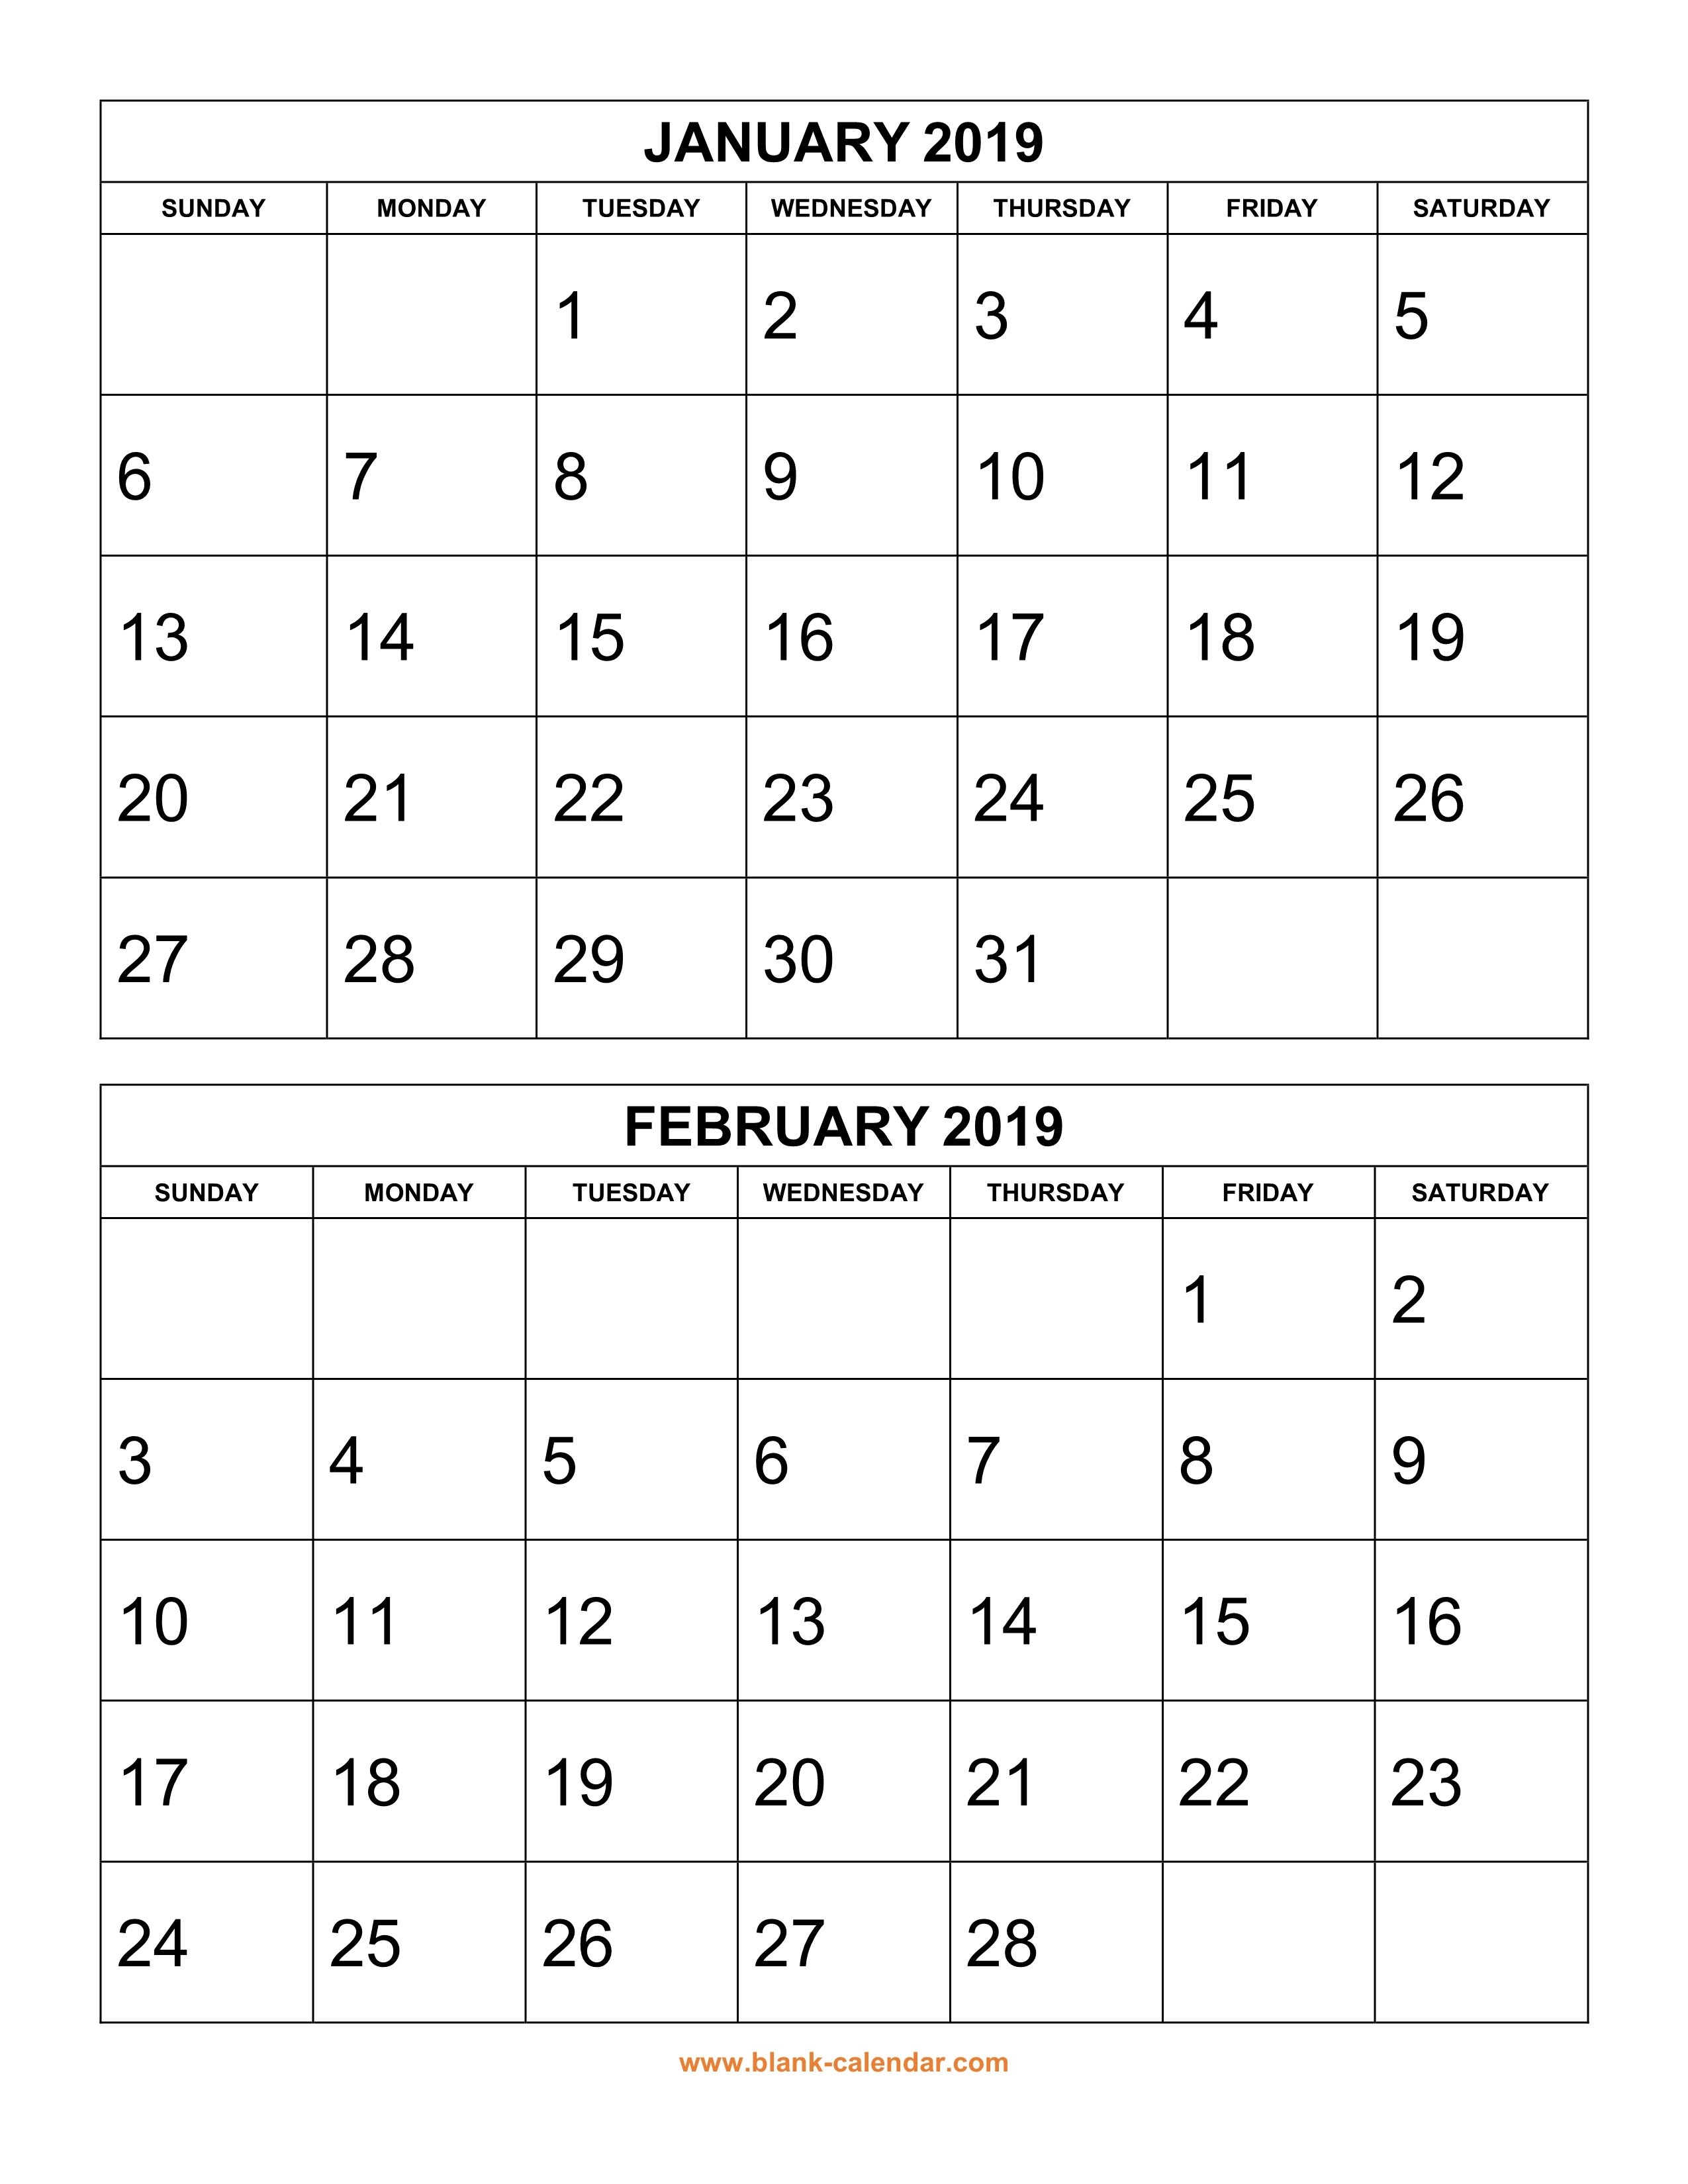 Free Download Printable Calendar 2019, 2 Months Per Page, 6 Pages 2 Month Calendar 2019